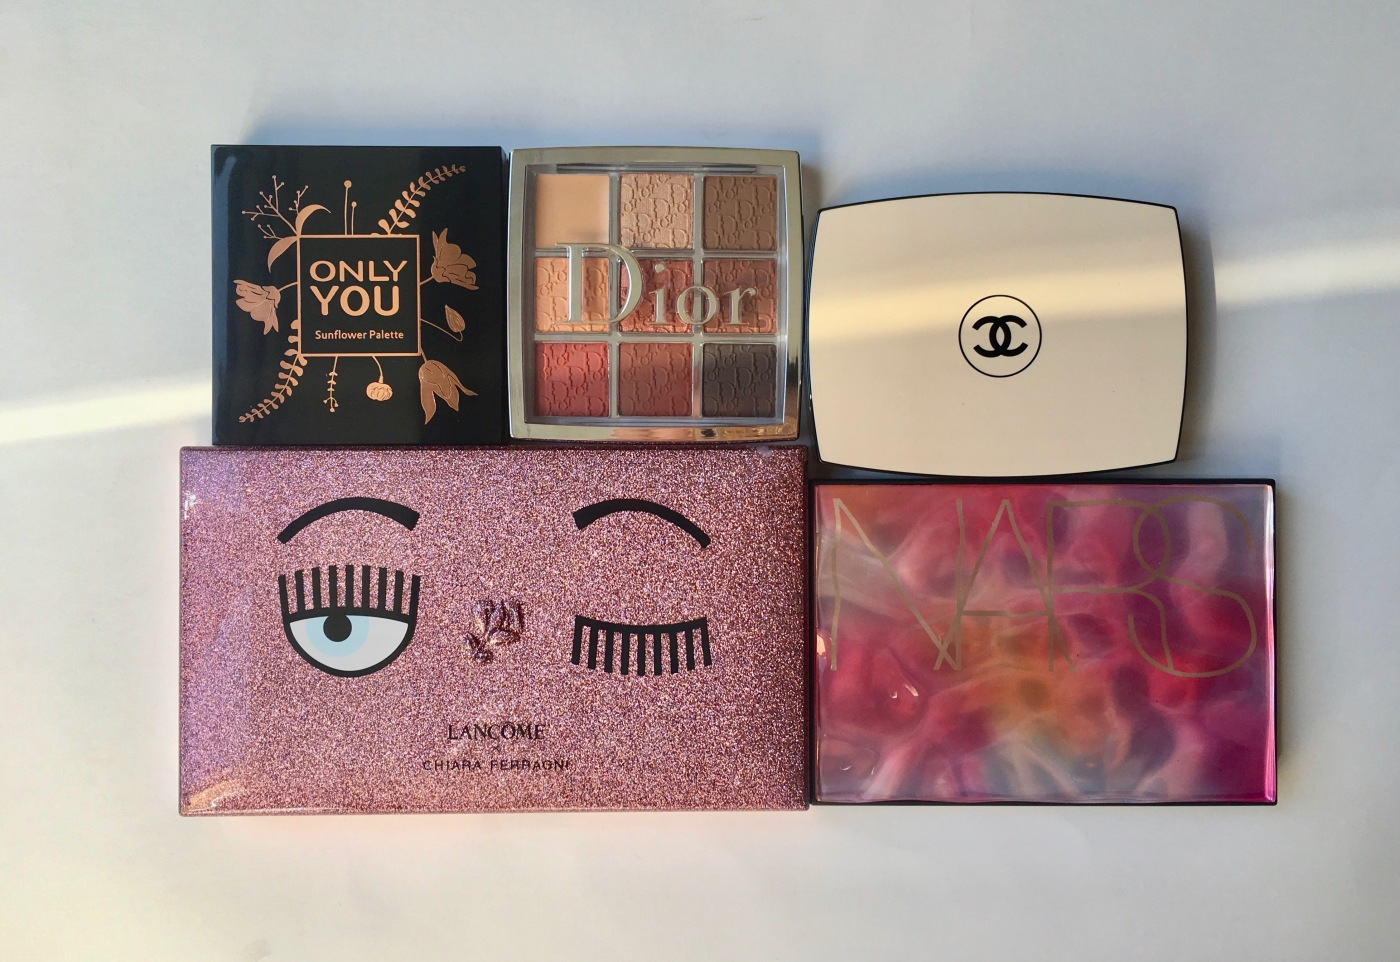 palette nars blush palette chiara ferragni lancome chanel les beiges eyeshadow palette dior backstage eyeshadow palette only you sunflower palette